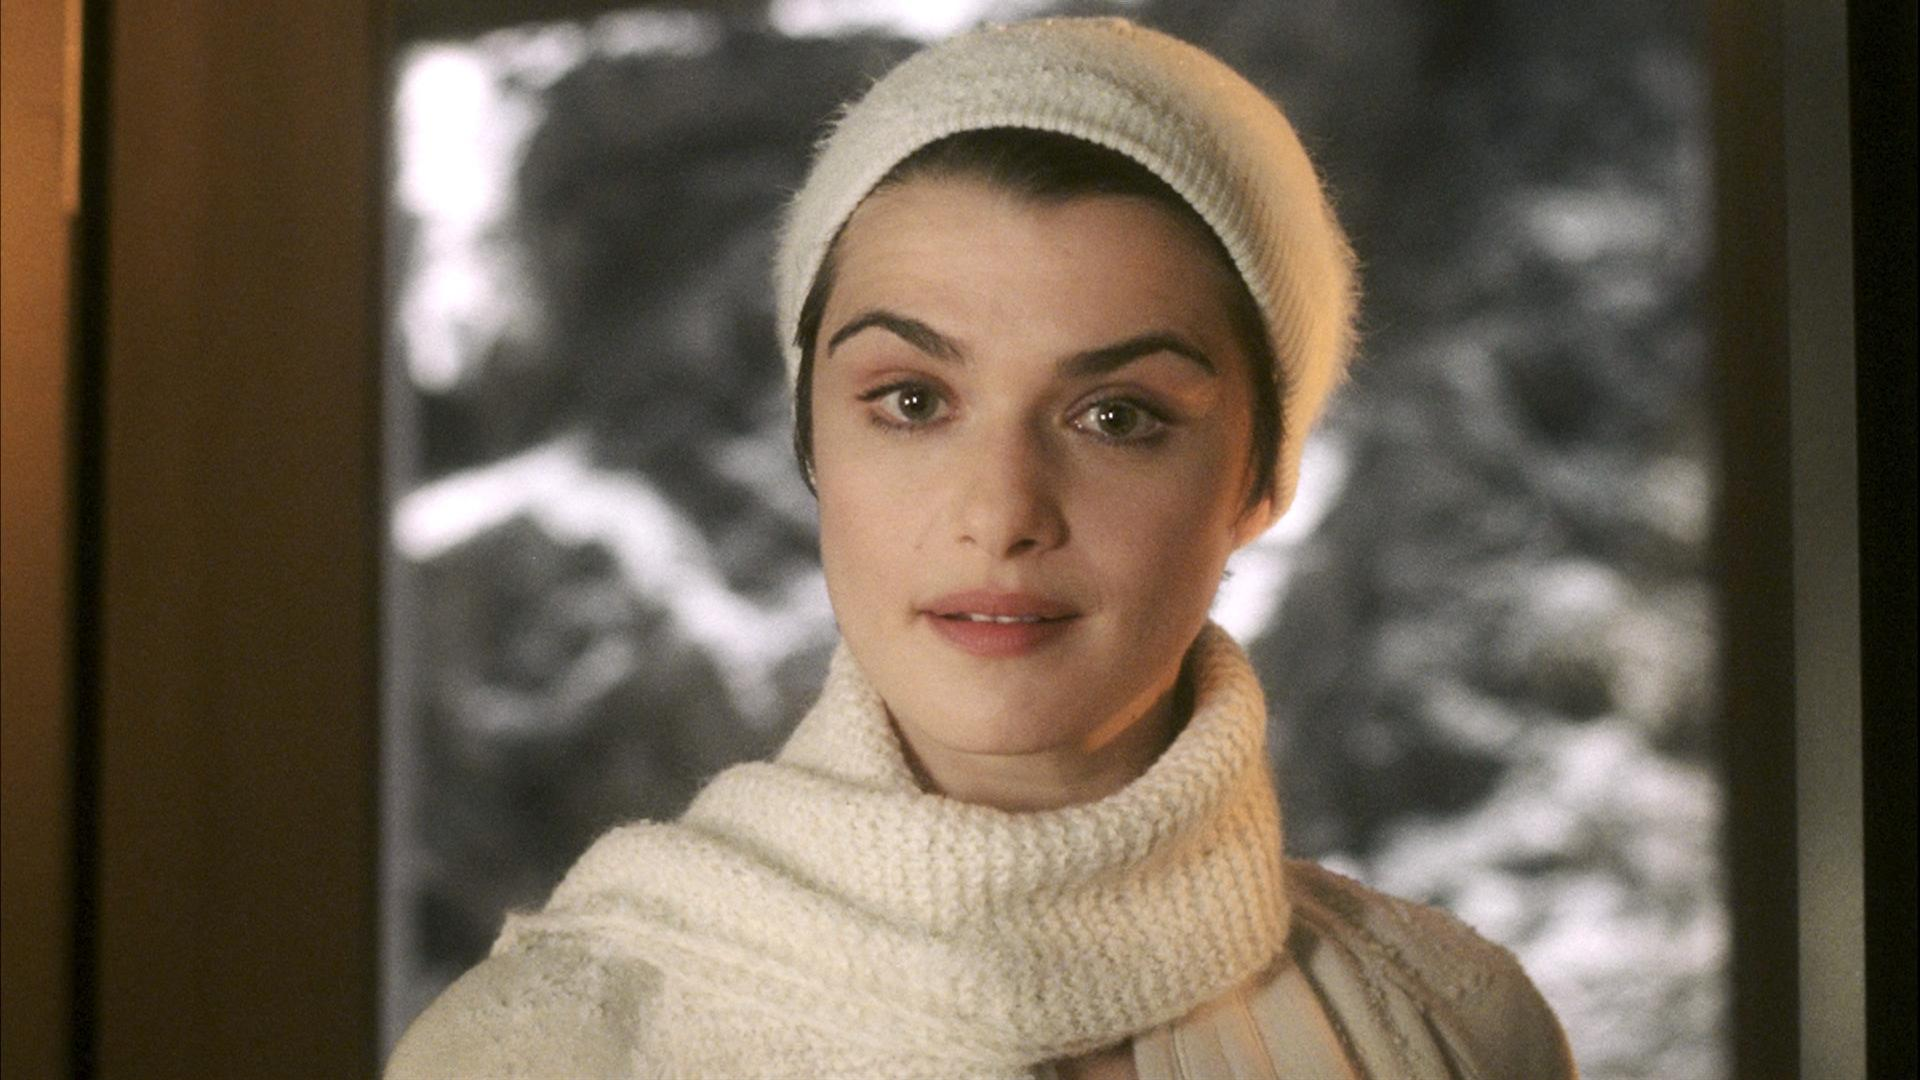 Rachel Weisz in The Fountain